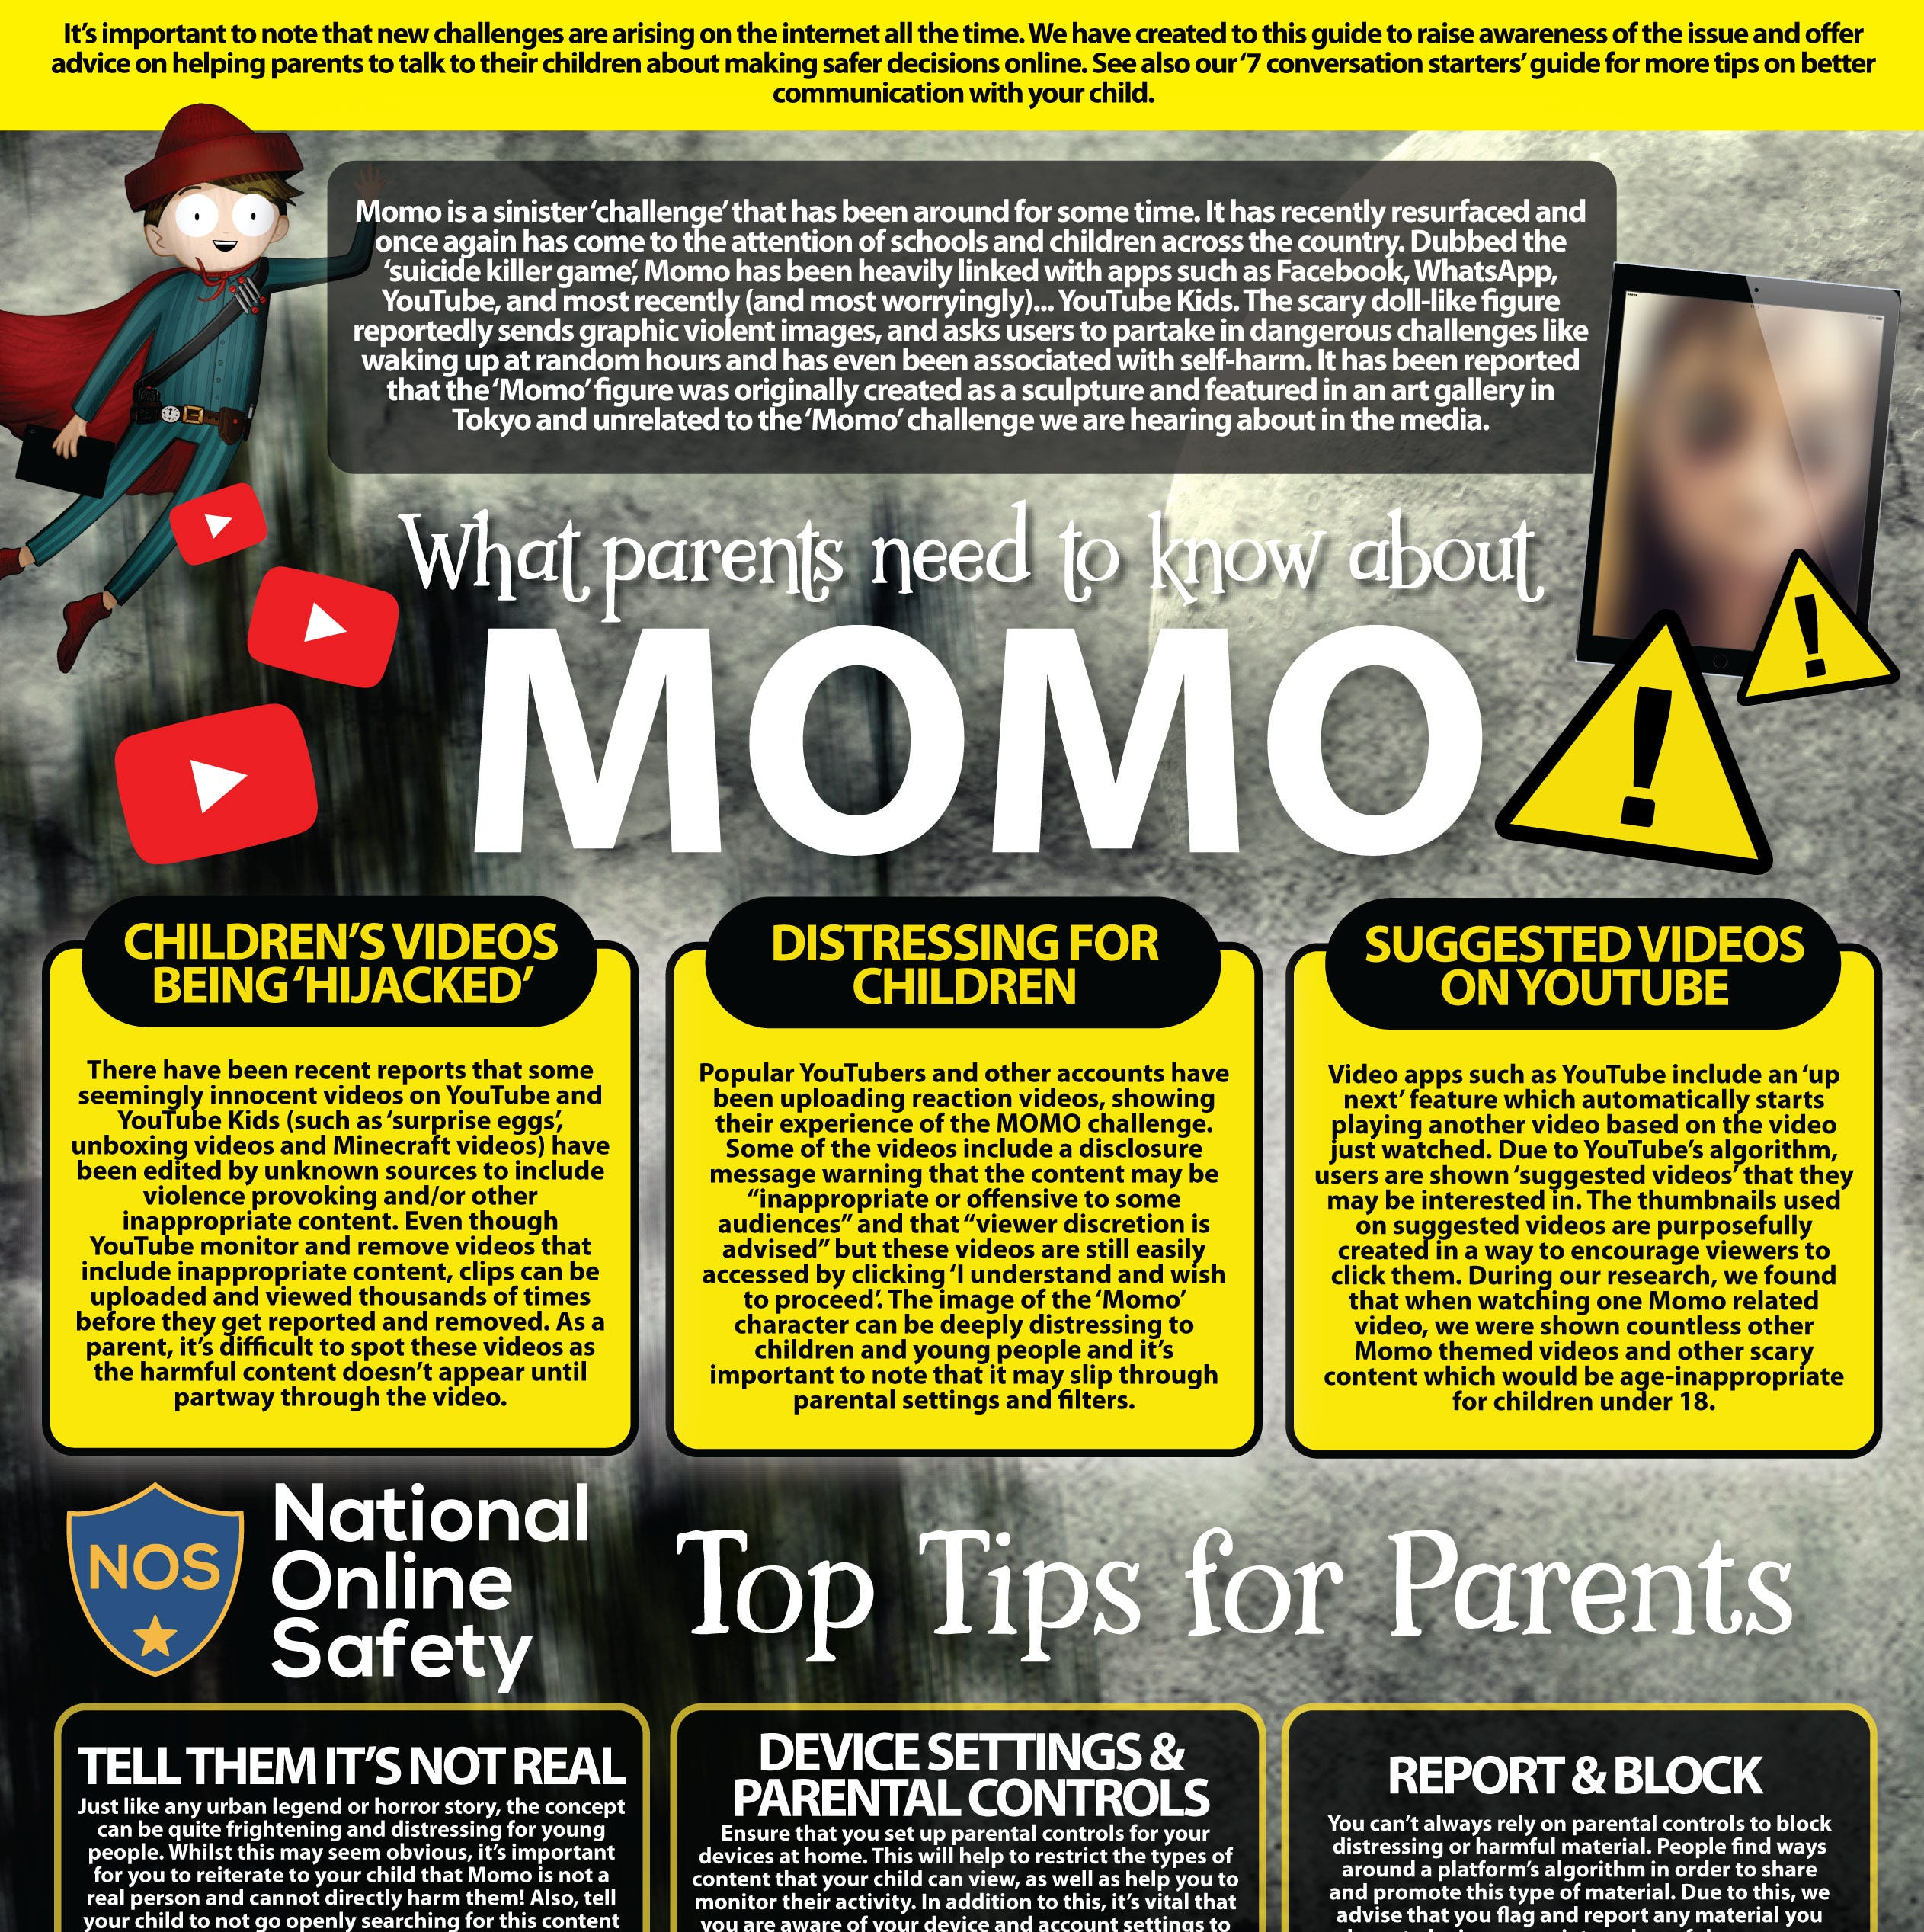 Momo challenge is a hoax: Here are tips teaching kids about online awareness and safety